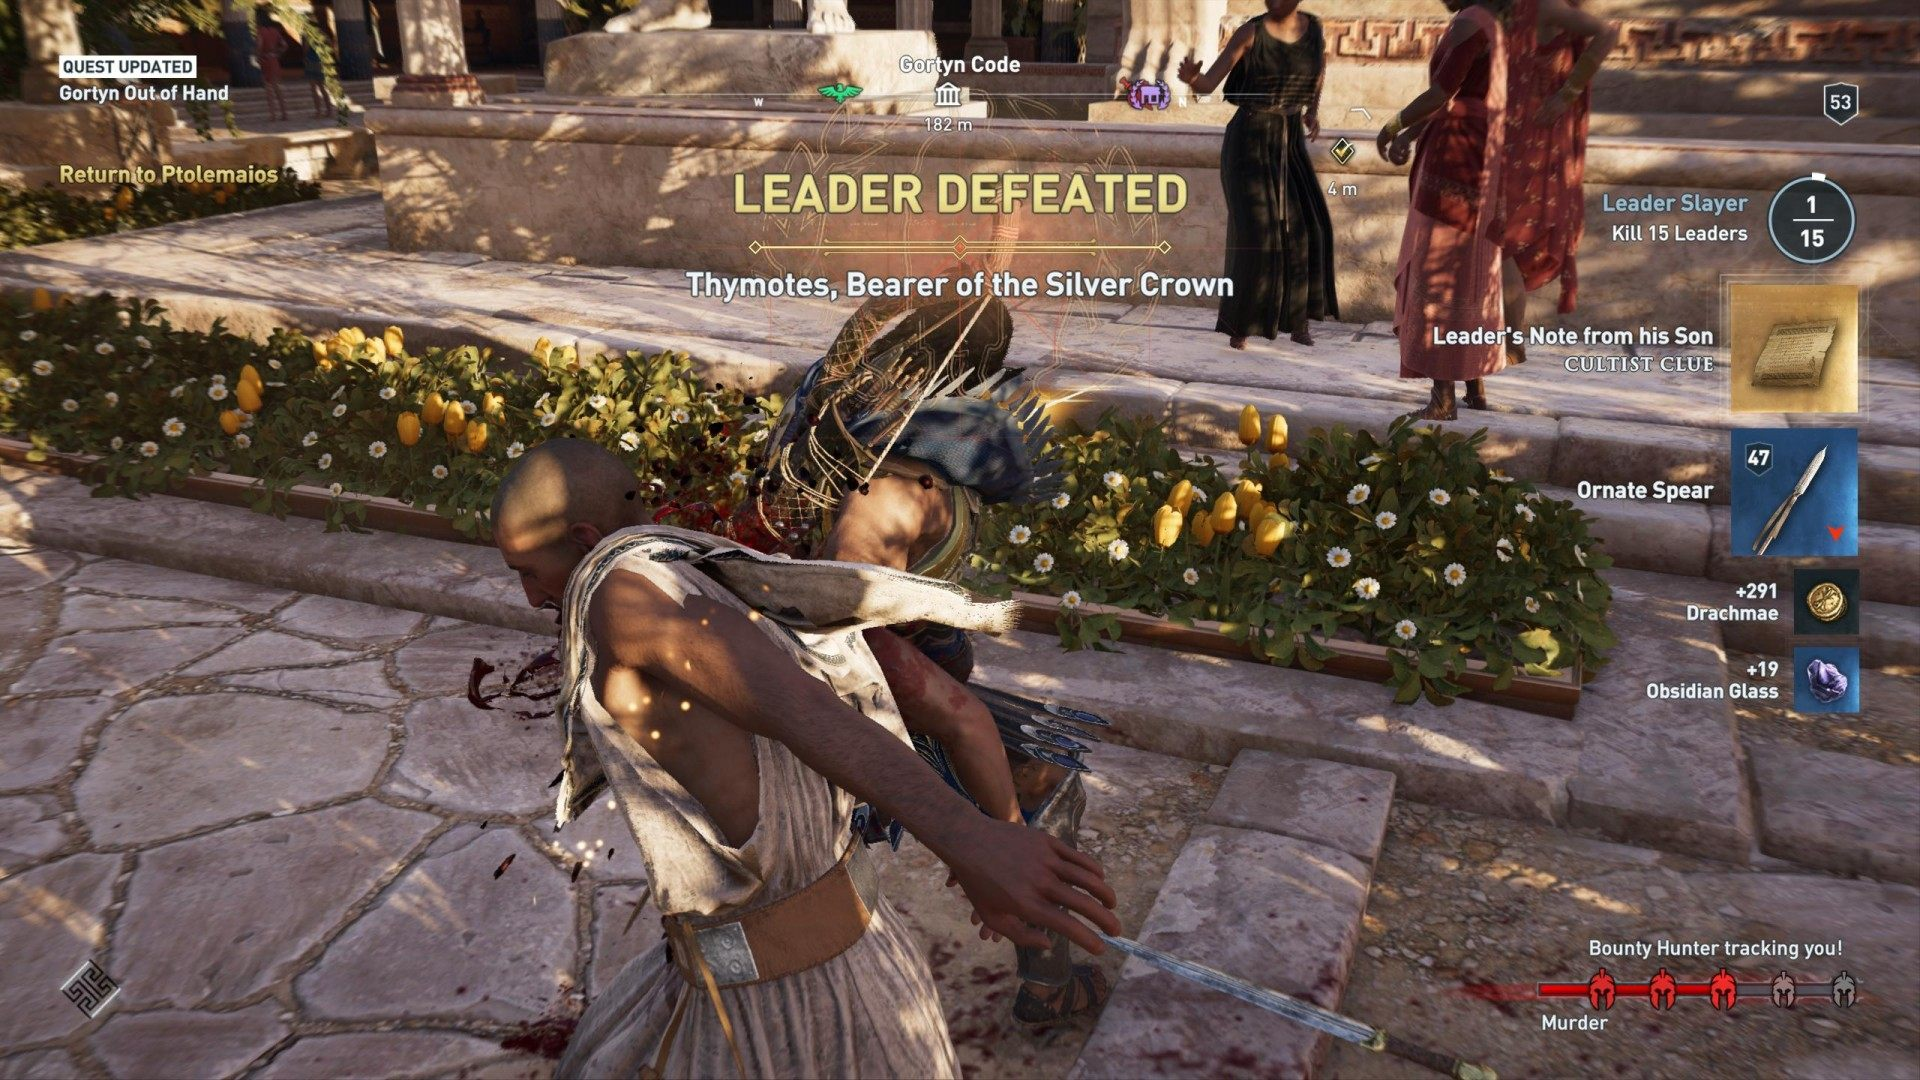 Gortyn Out of Hand, Assassin's Creed Odyssey Quest